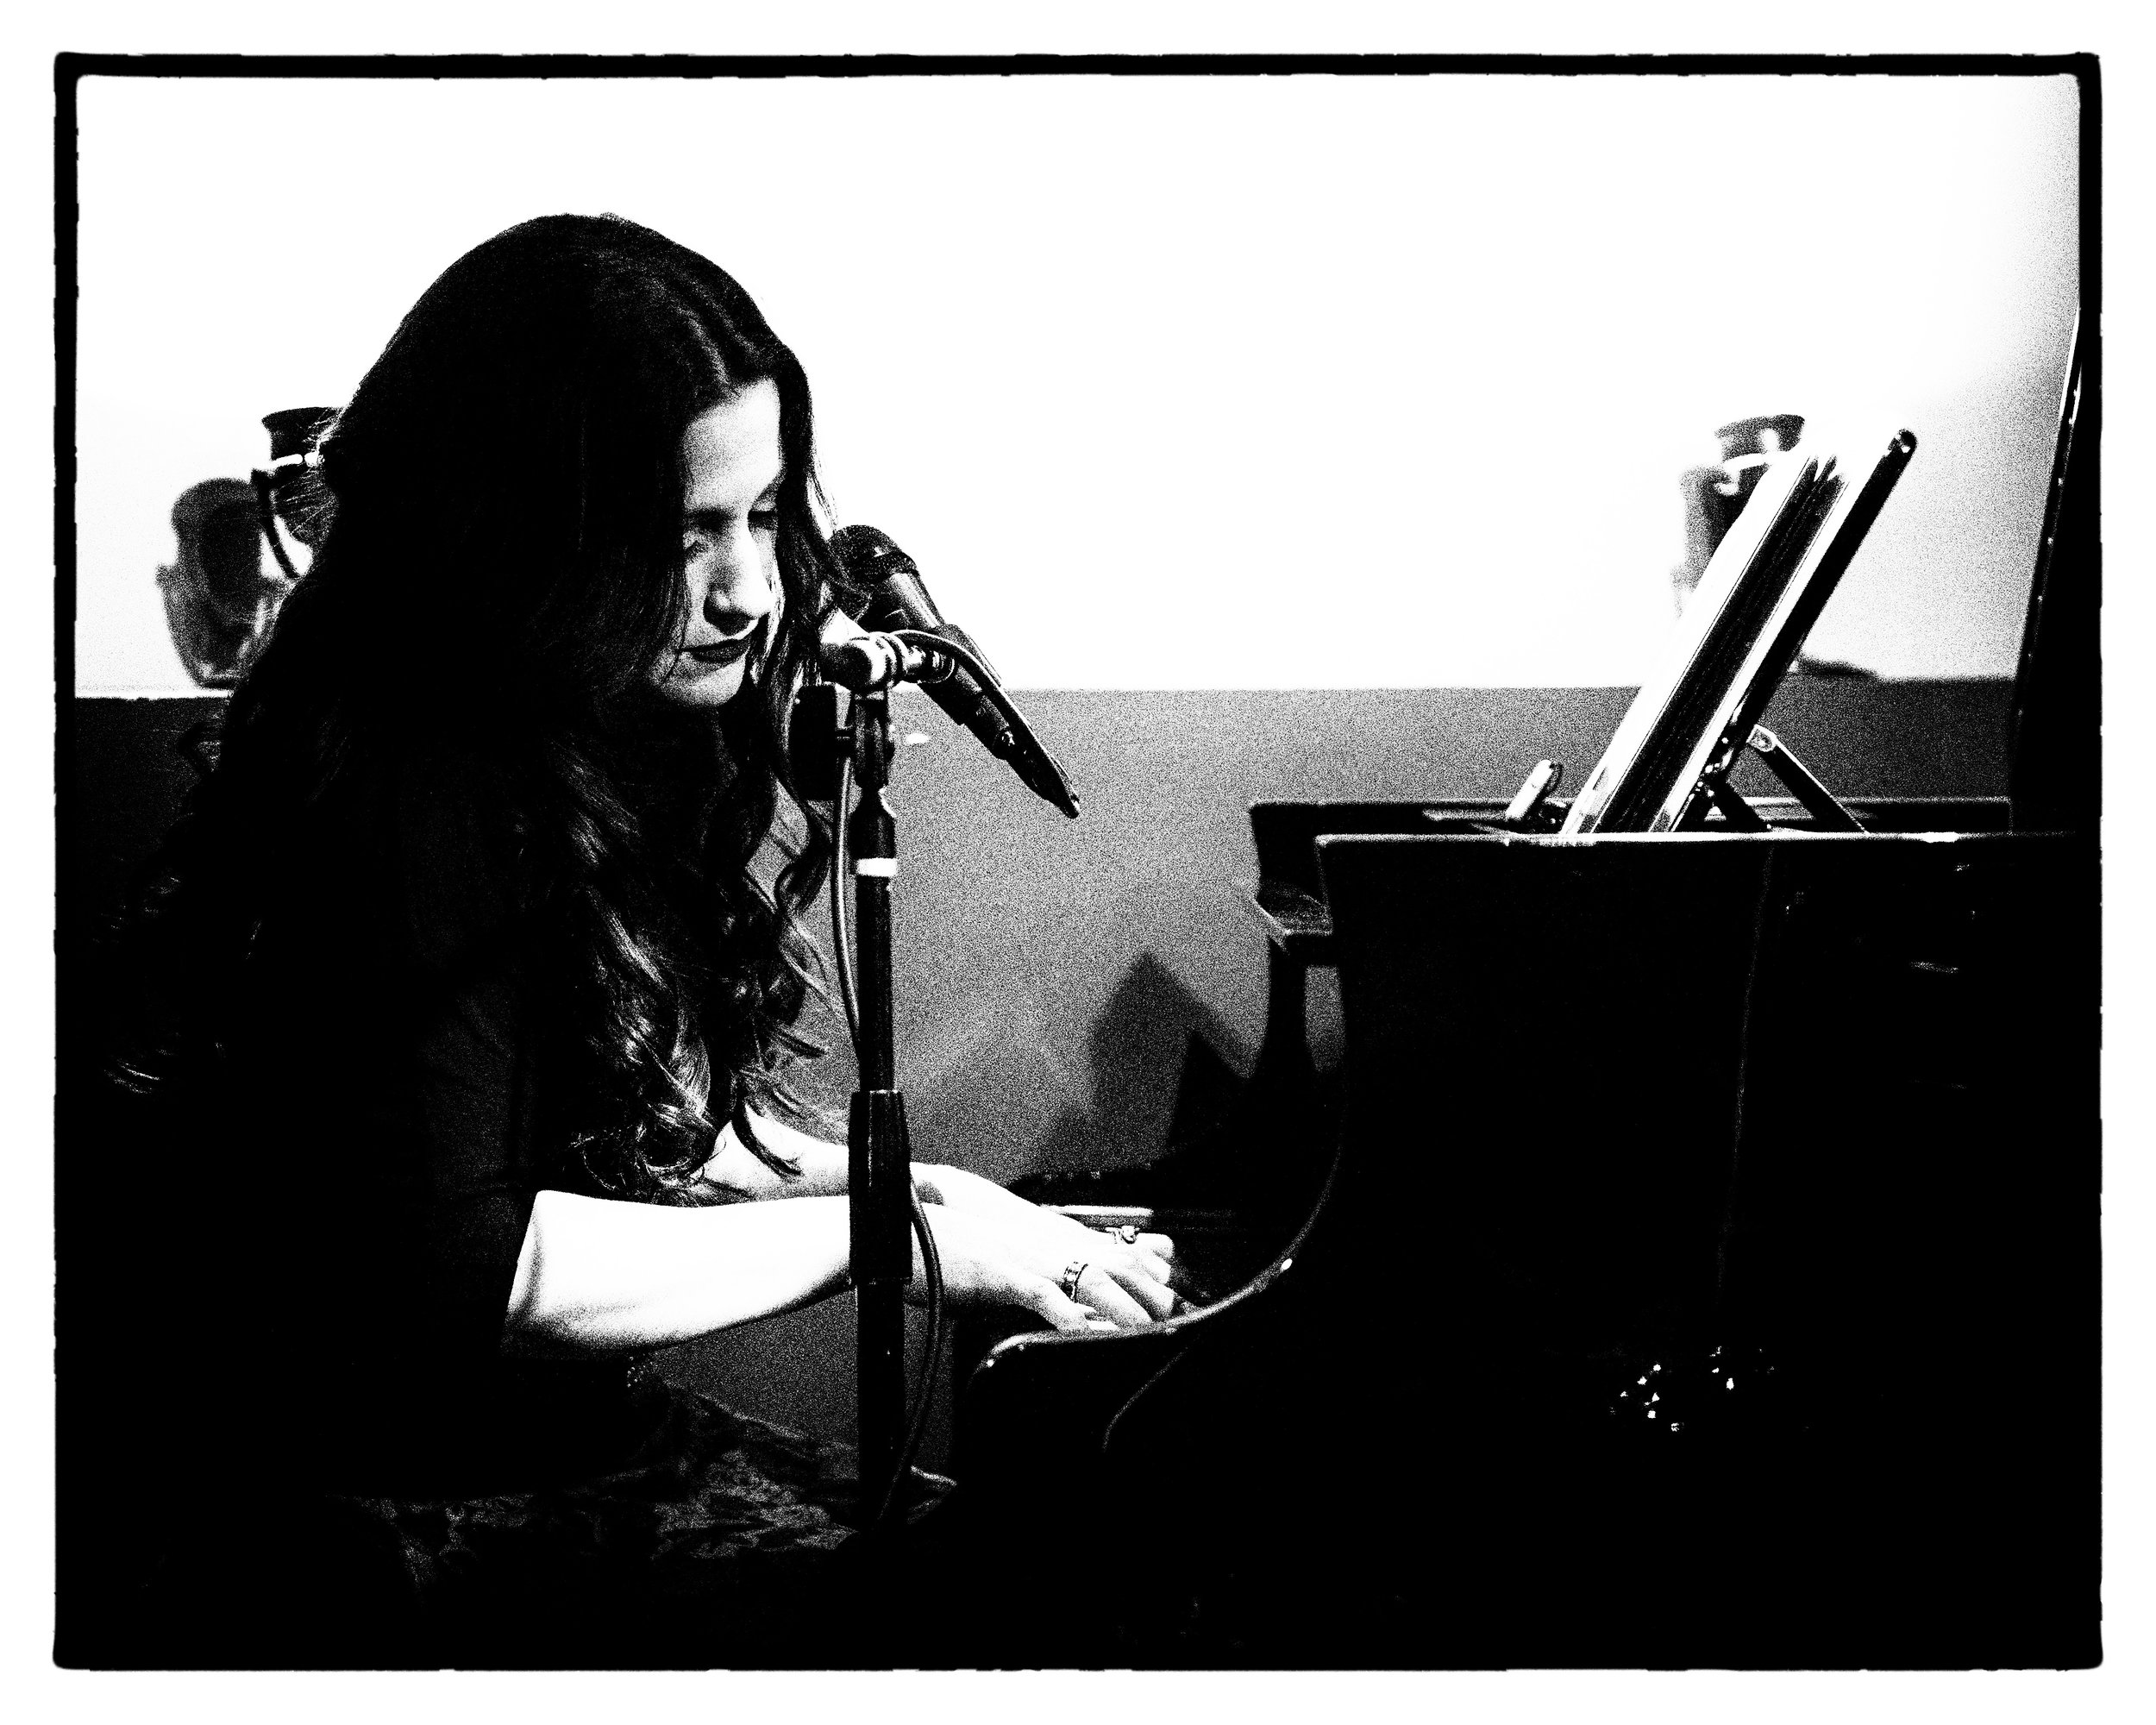 Rebecca De La Torre and Bohemian Insurgence perform at The Nash Jazz Phoenix.